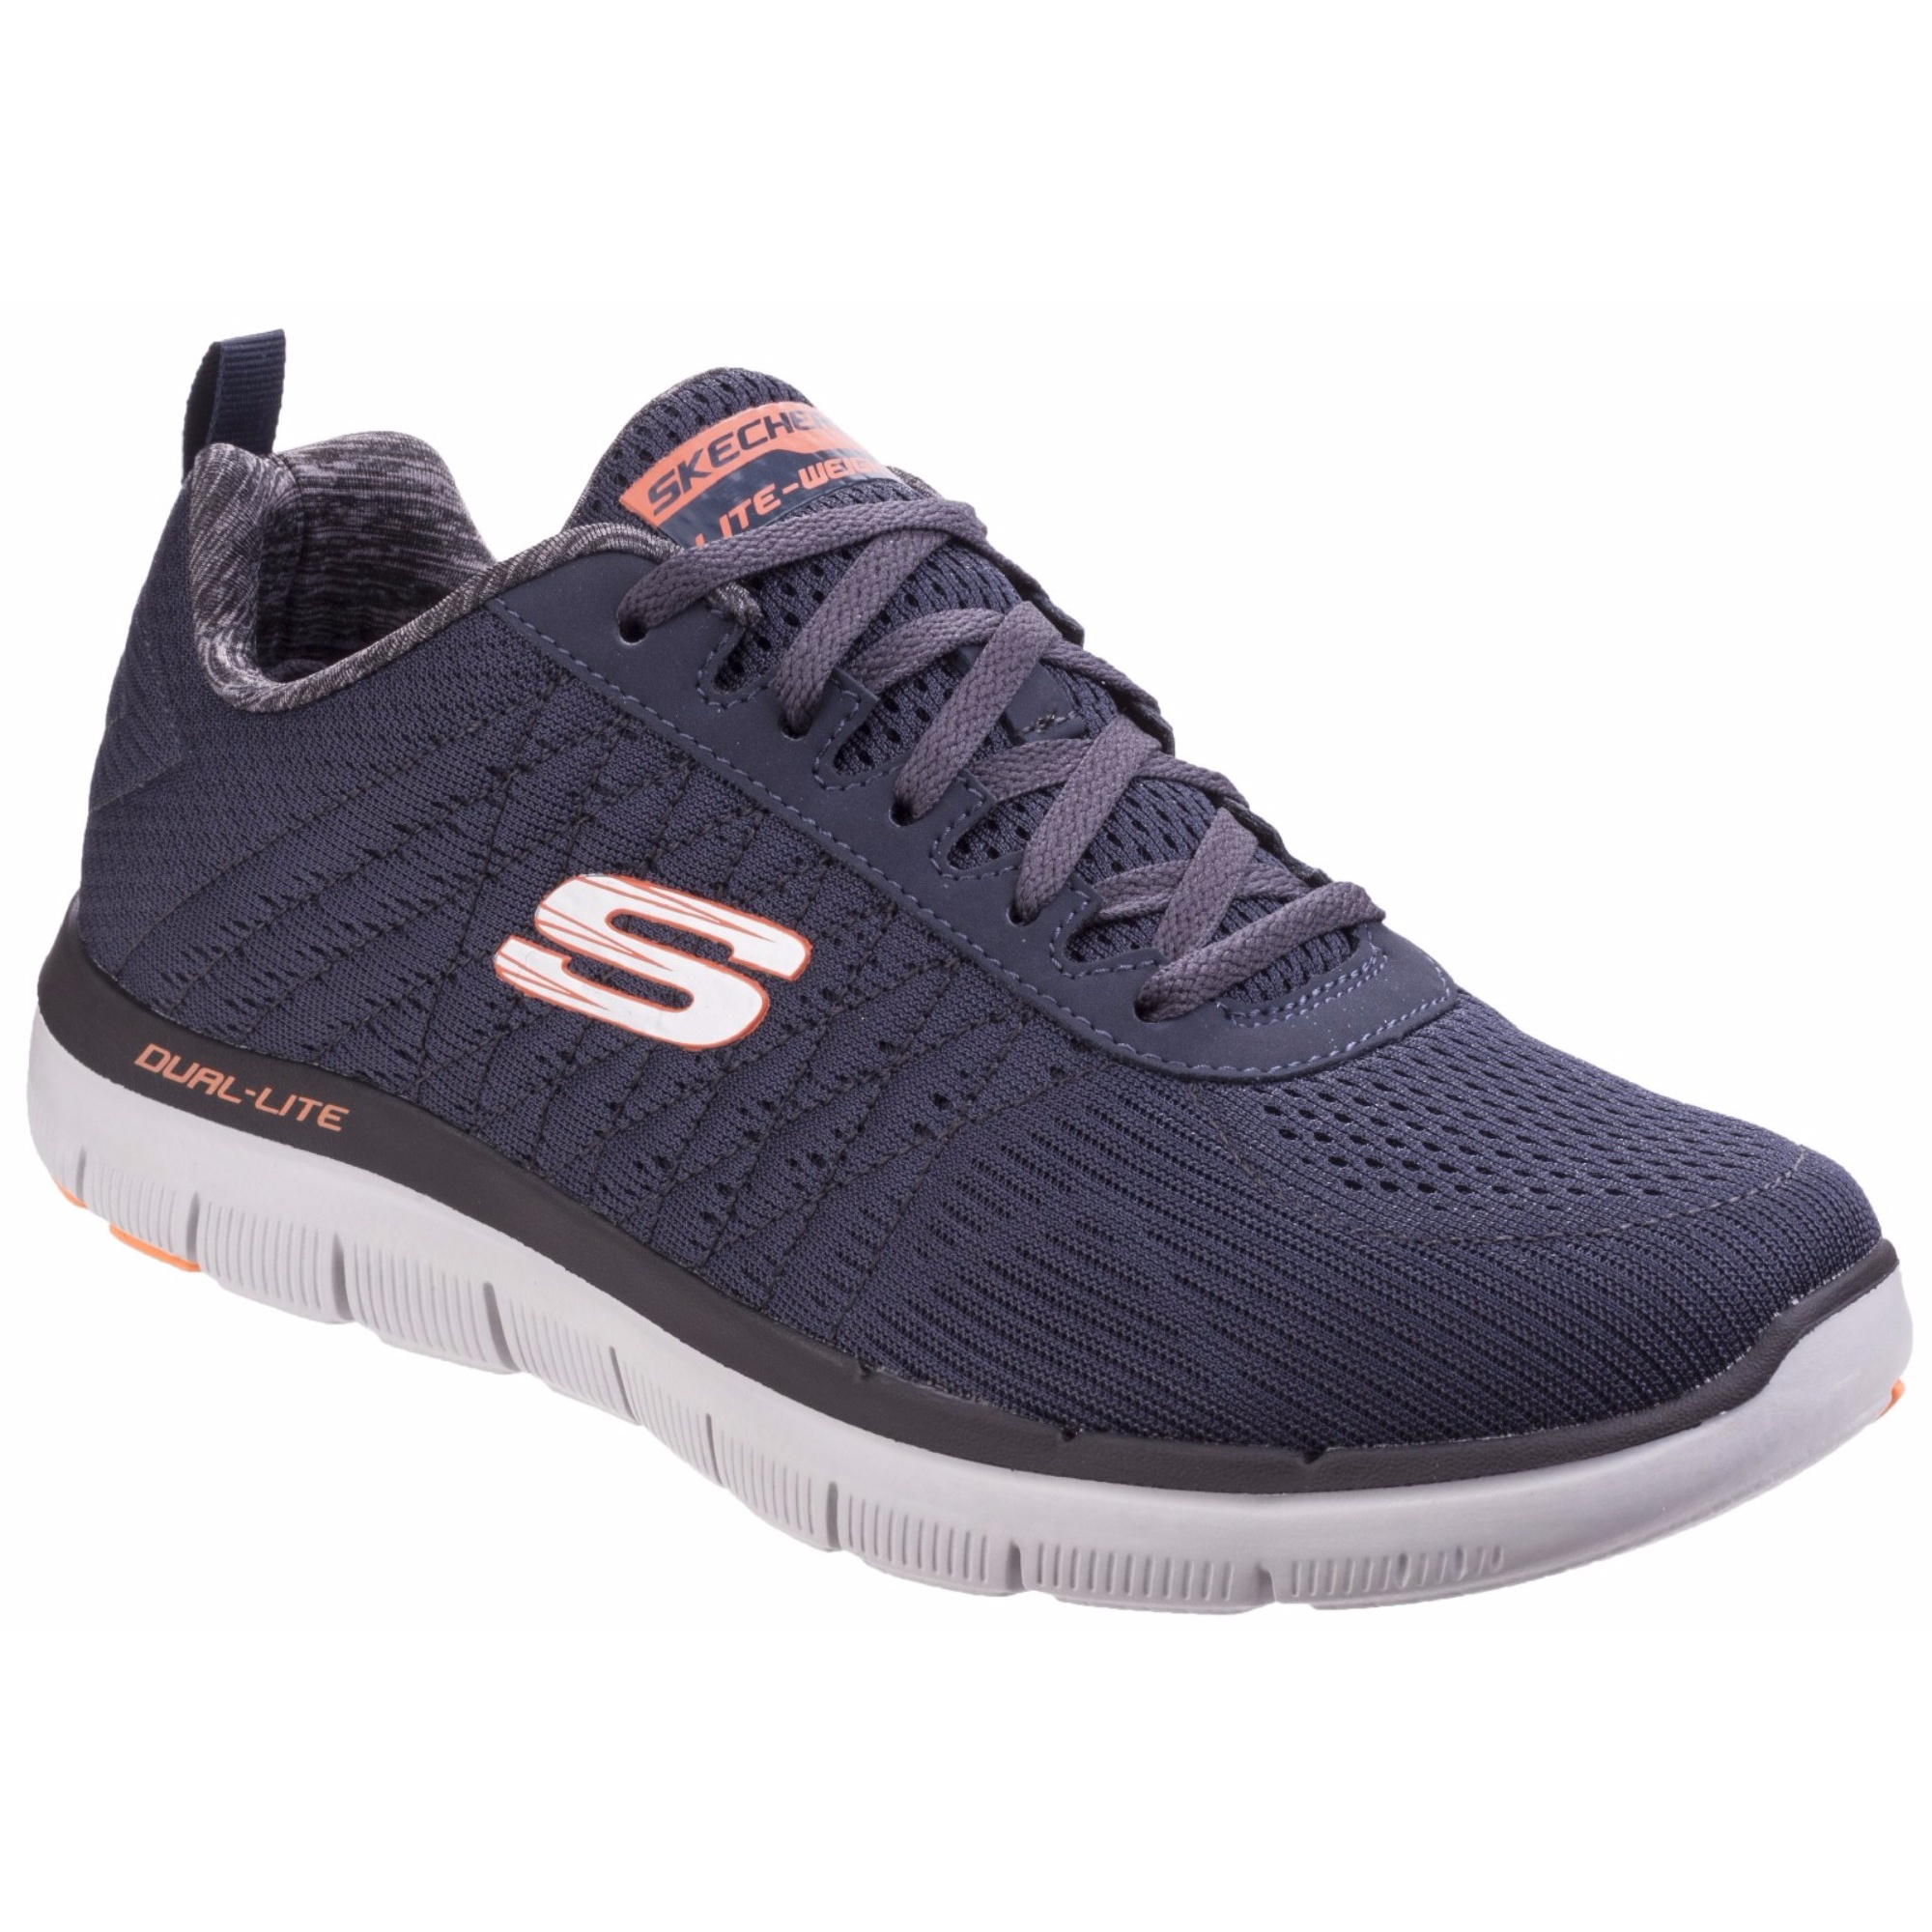 70f4fd0d424 skechers mens trainers for sale > OFF49% Discounts